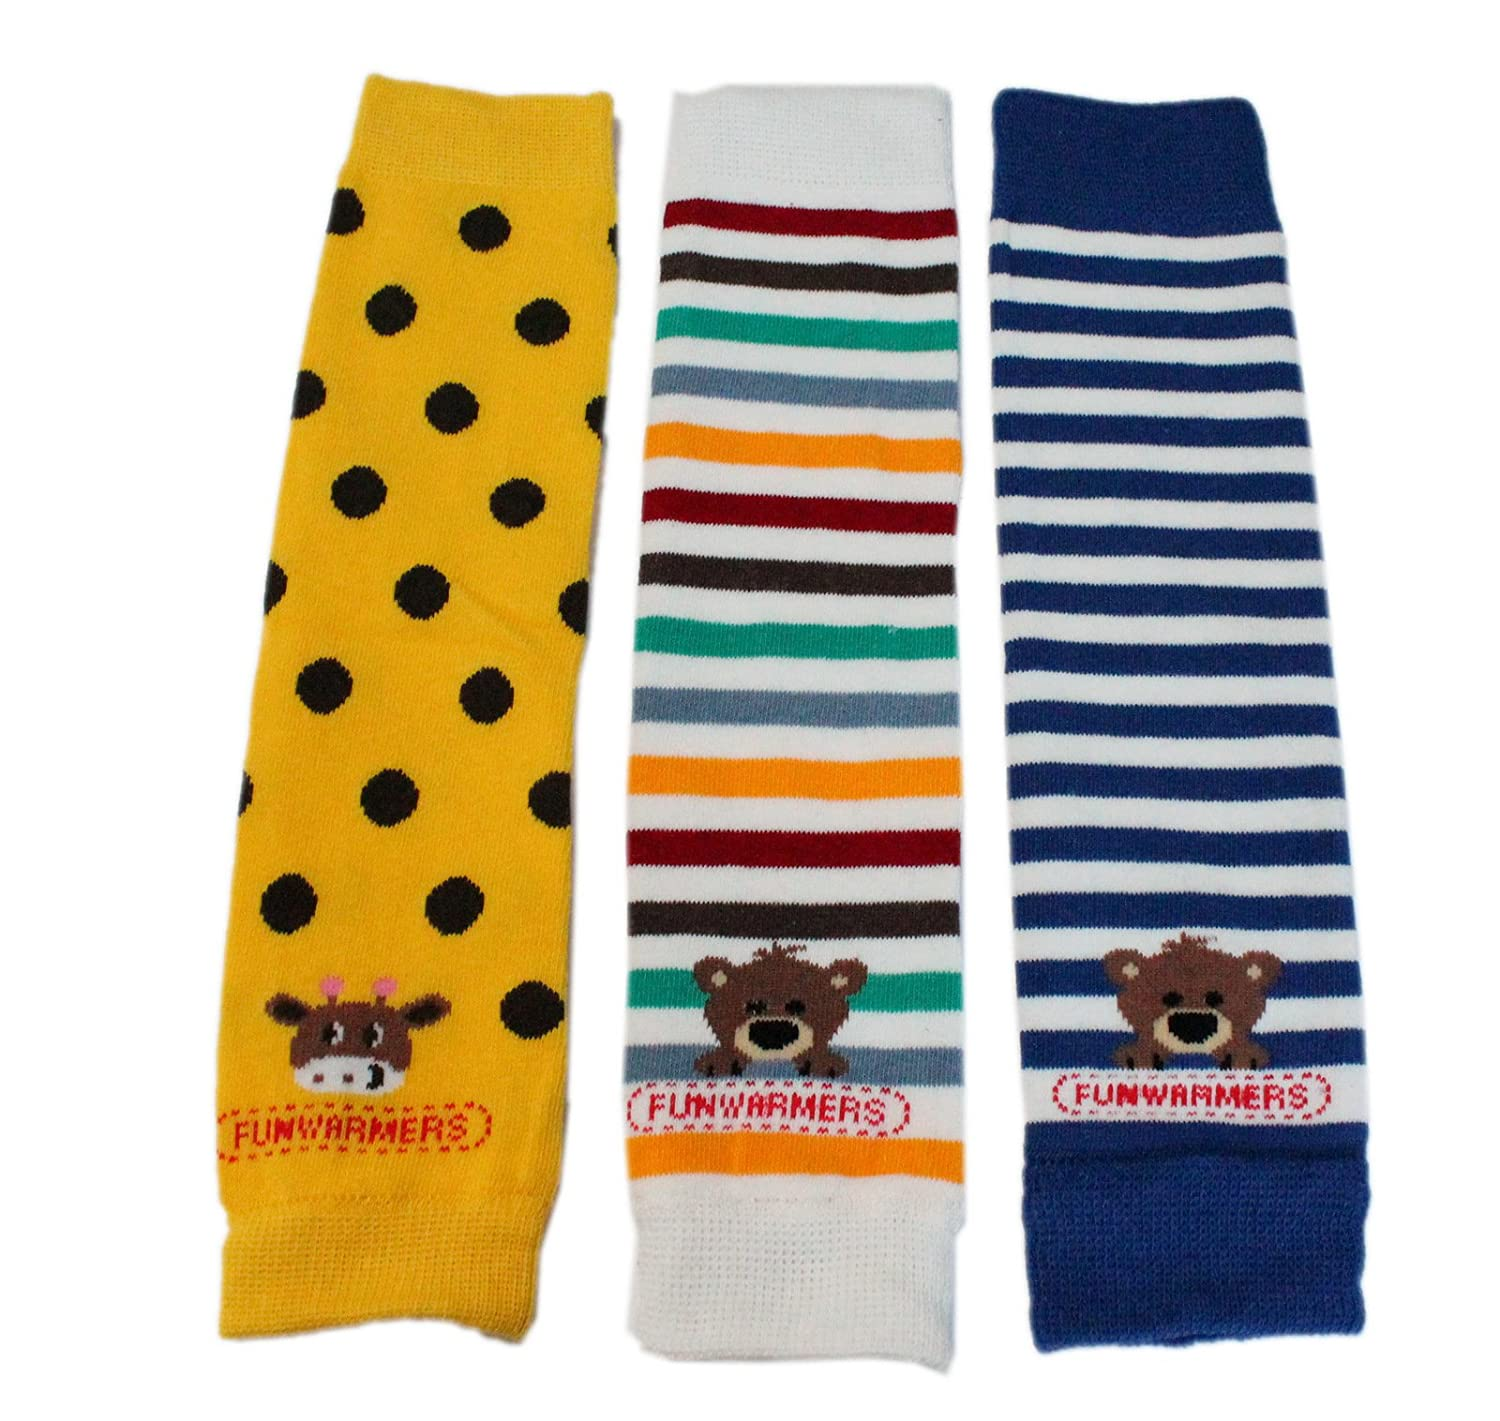 Baby Toddler Boy Leg Warmers Pack of 3 - COLOURFUL BLUE STRIPED BEAR YELLOW POLKA GIRAFFE